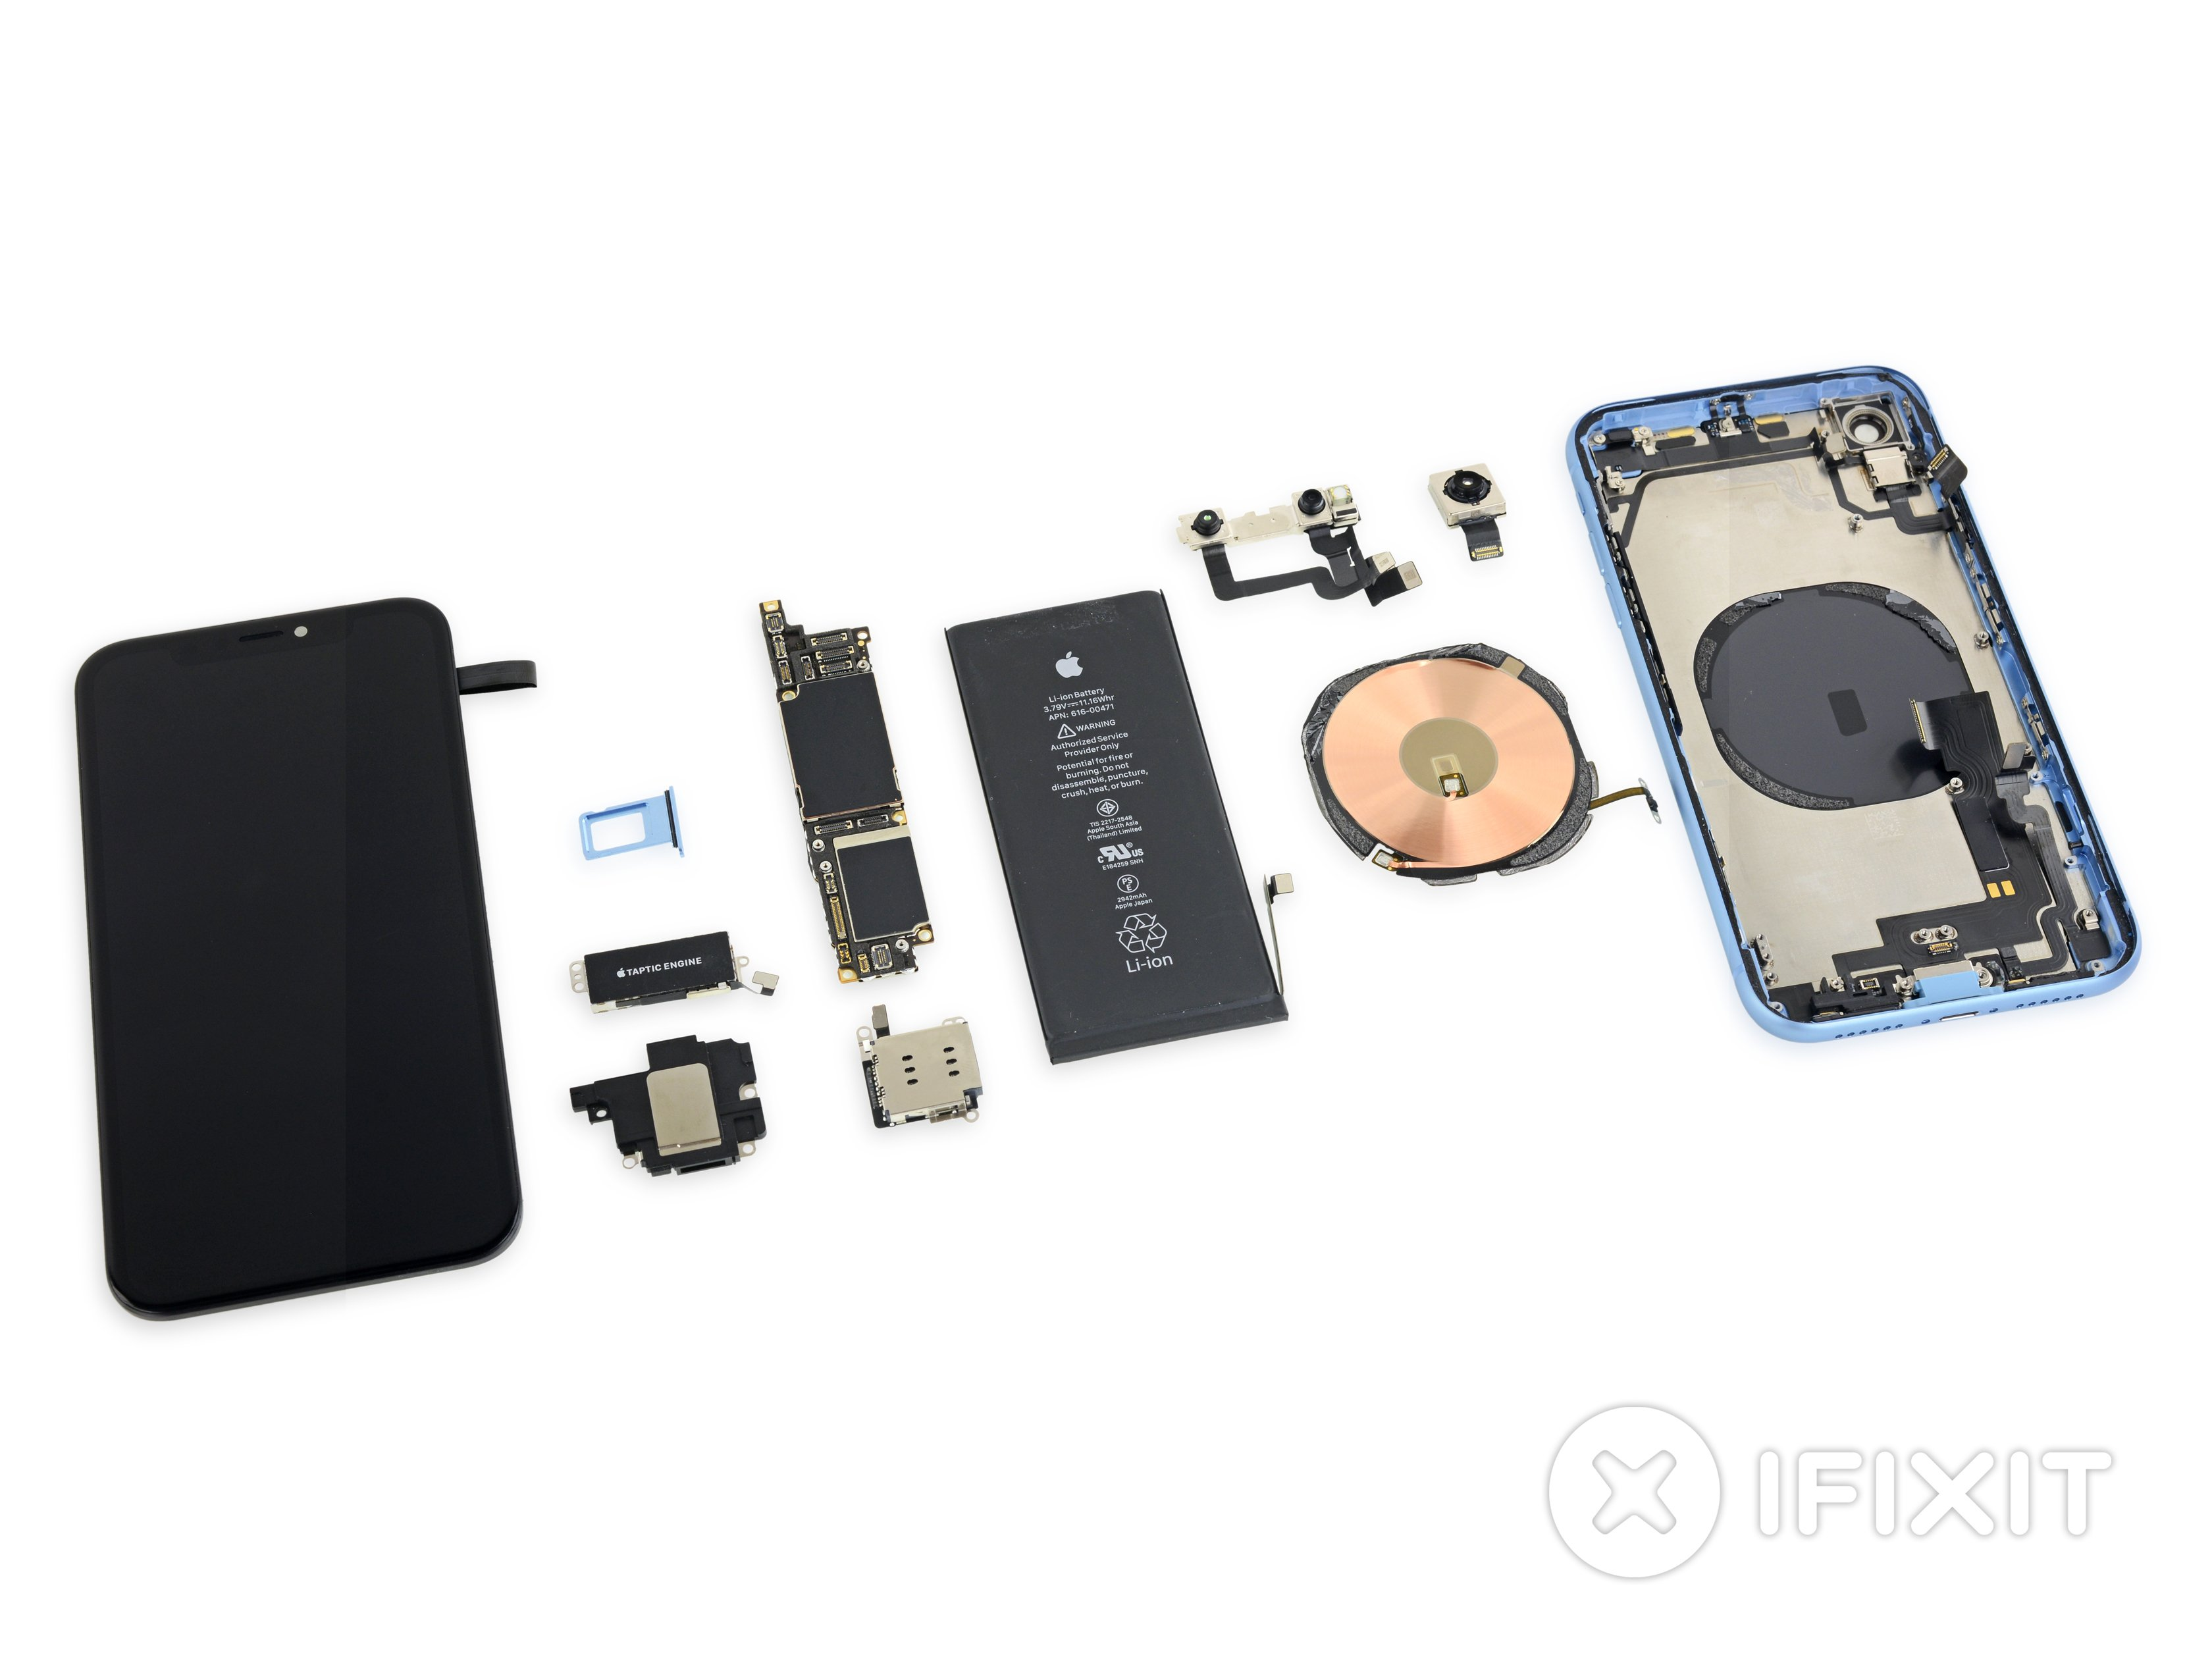 iPhone XR Teardown